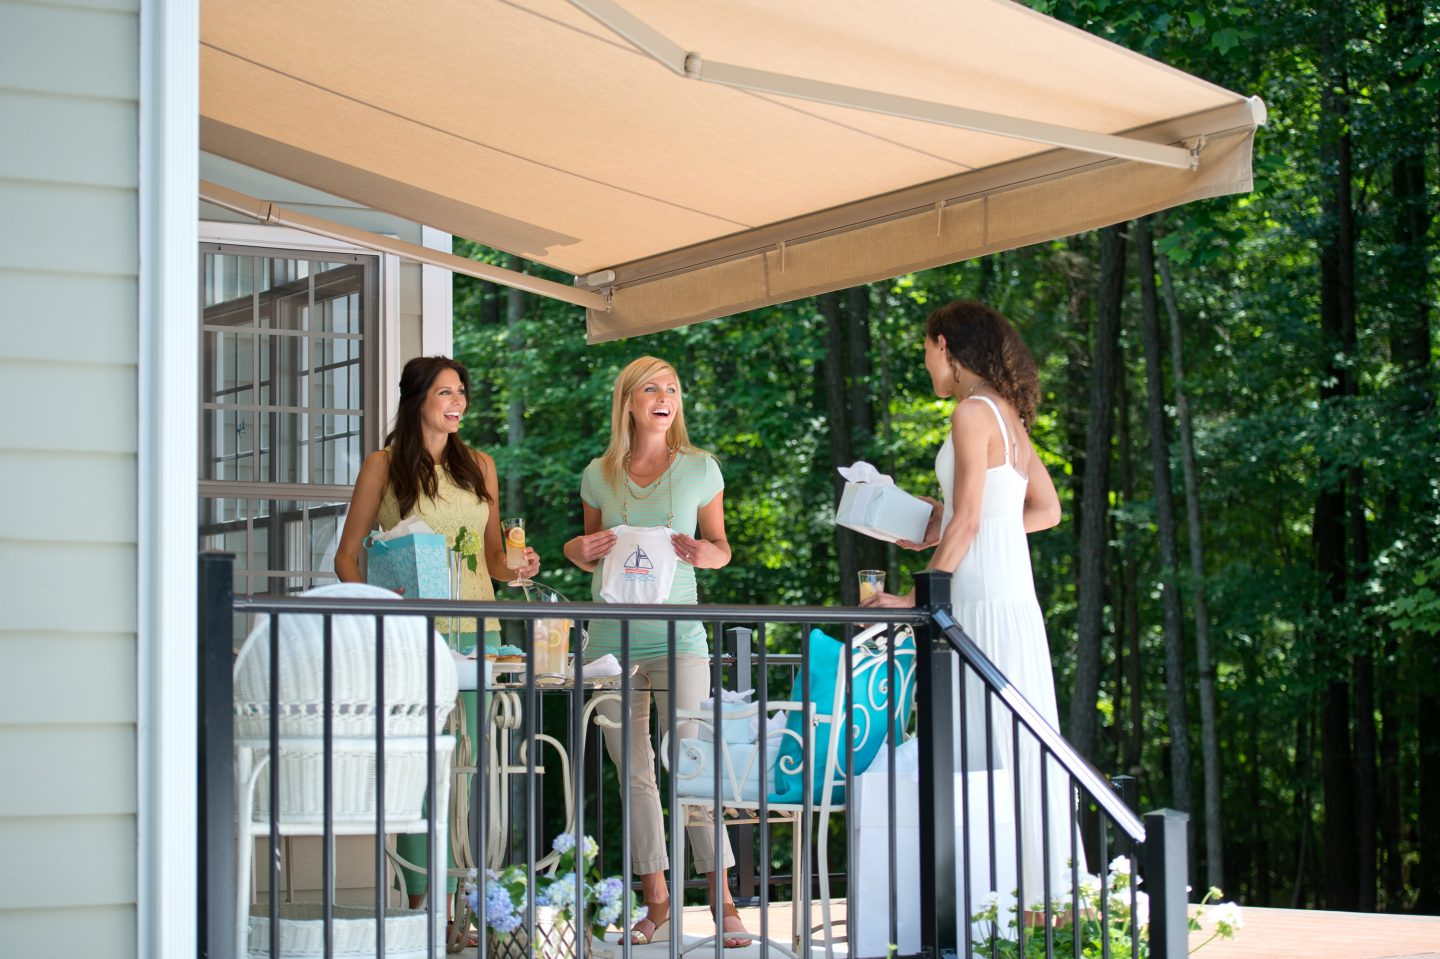 solair awning suppliers in ny and ct